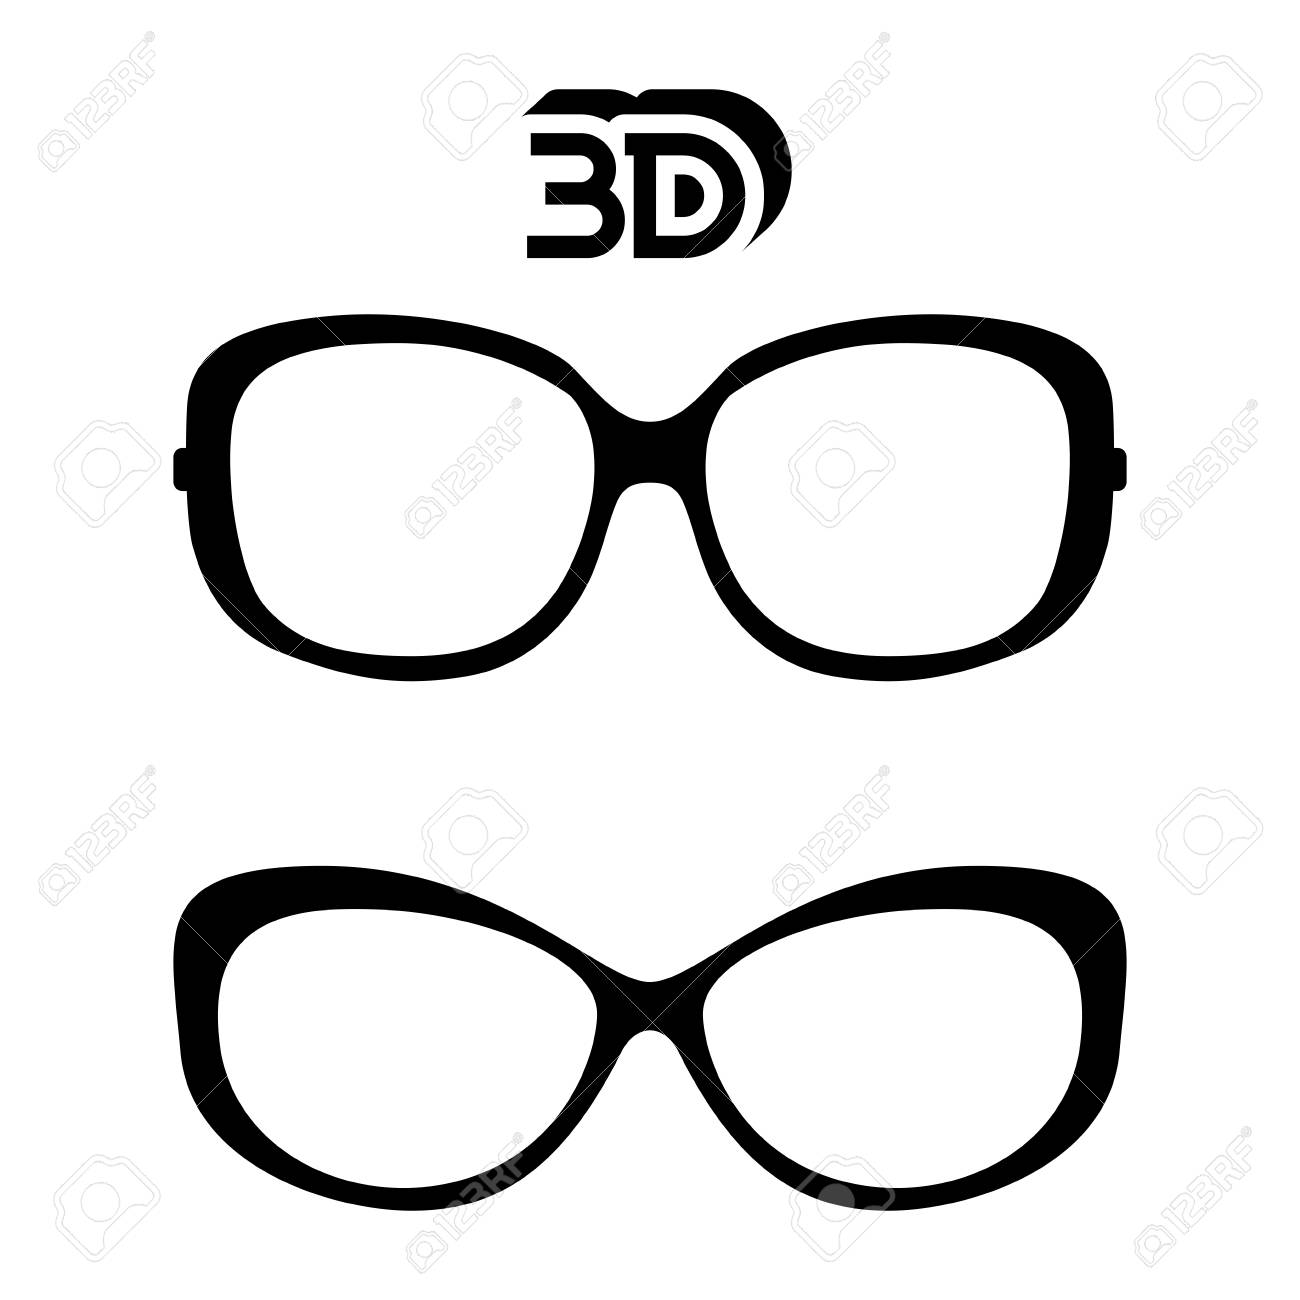 1300x1300 Black And White 3d Glasses Icon Isolated Royalty Free Cliparts